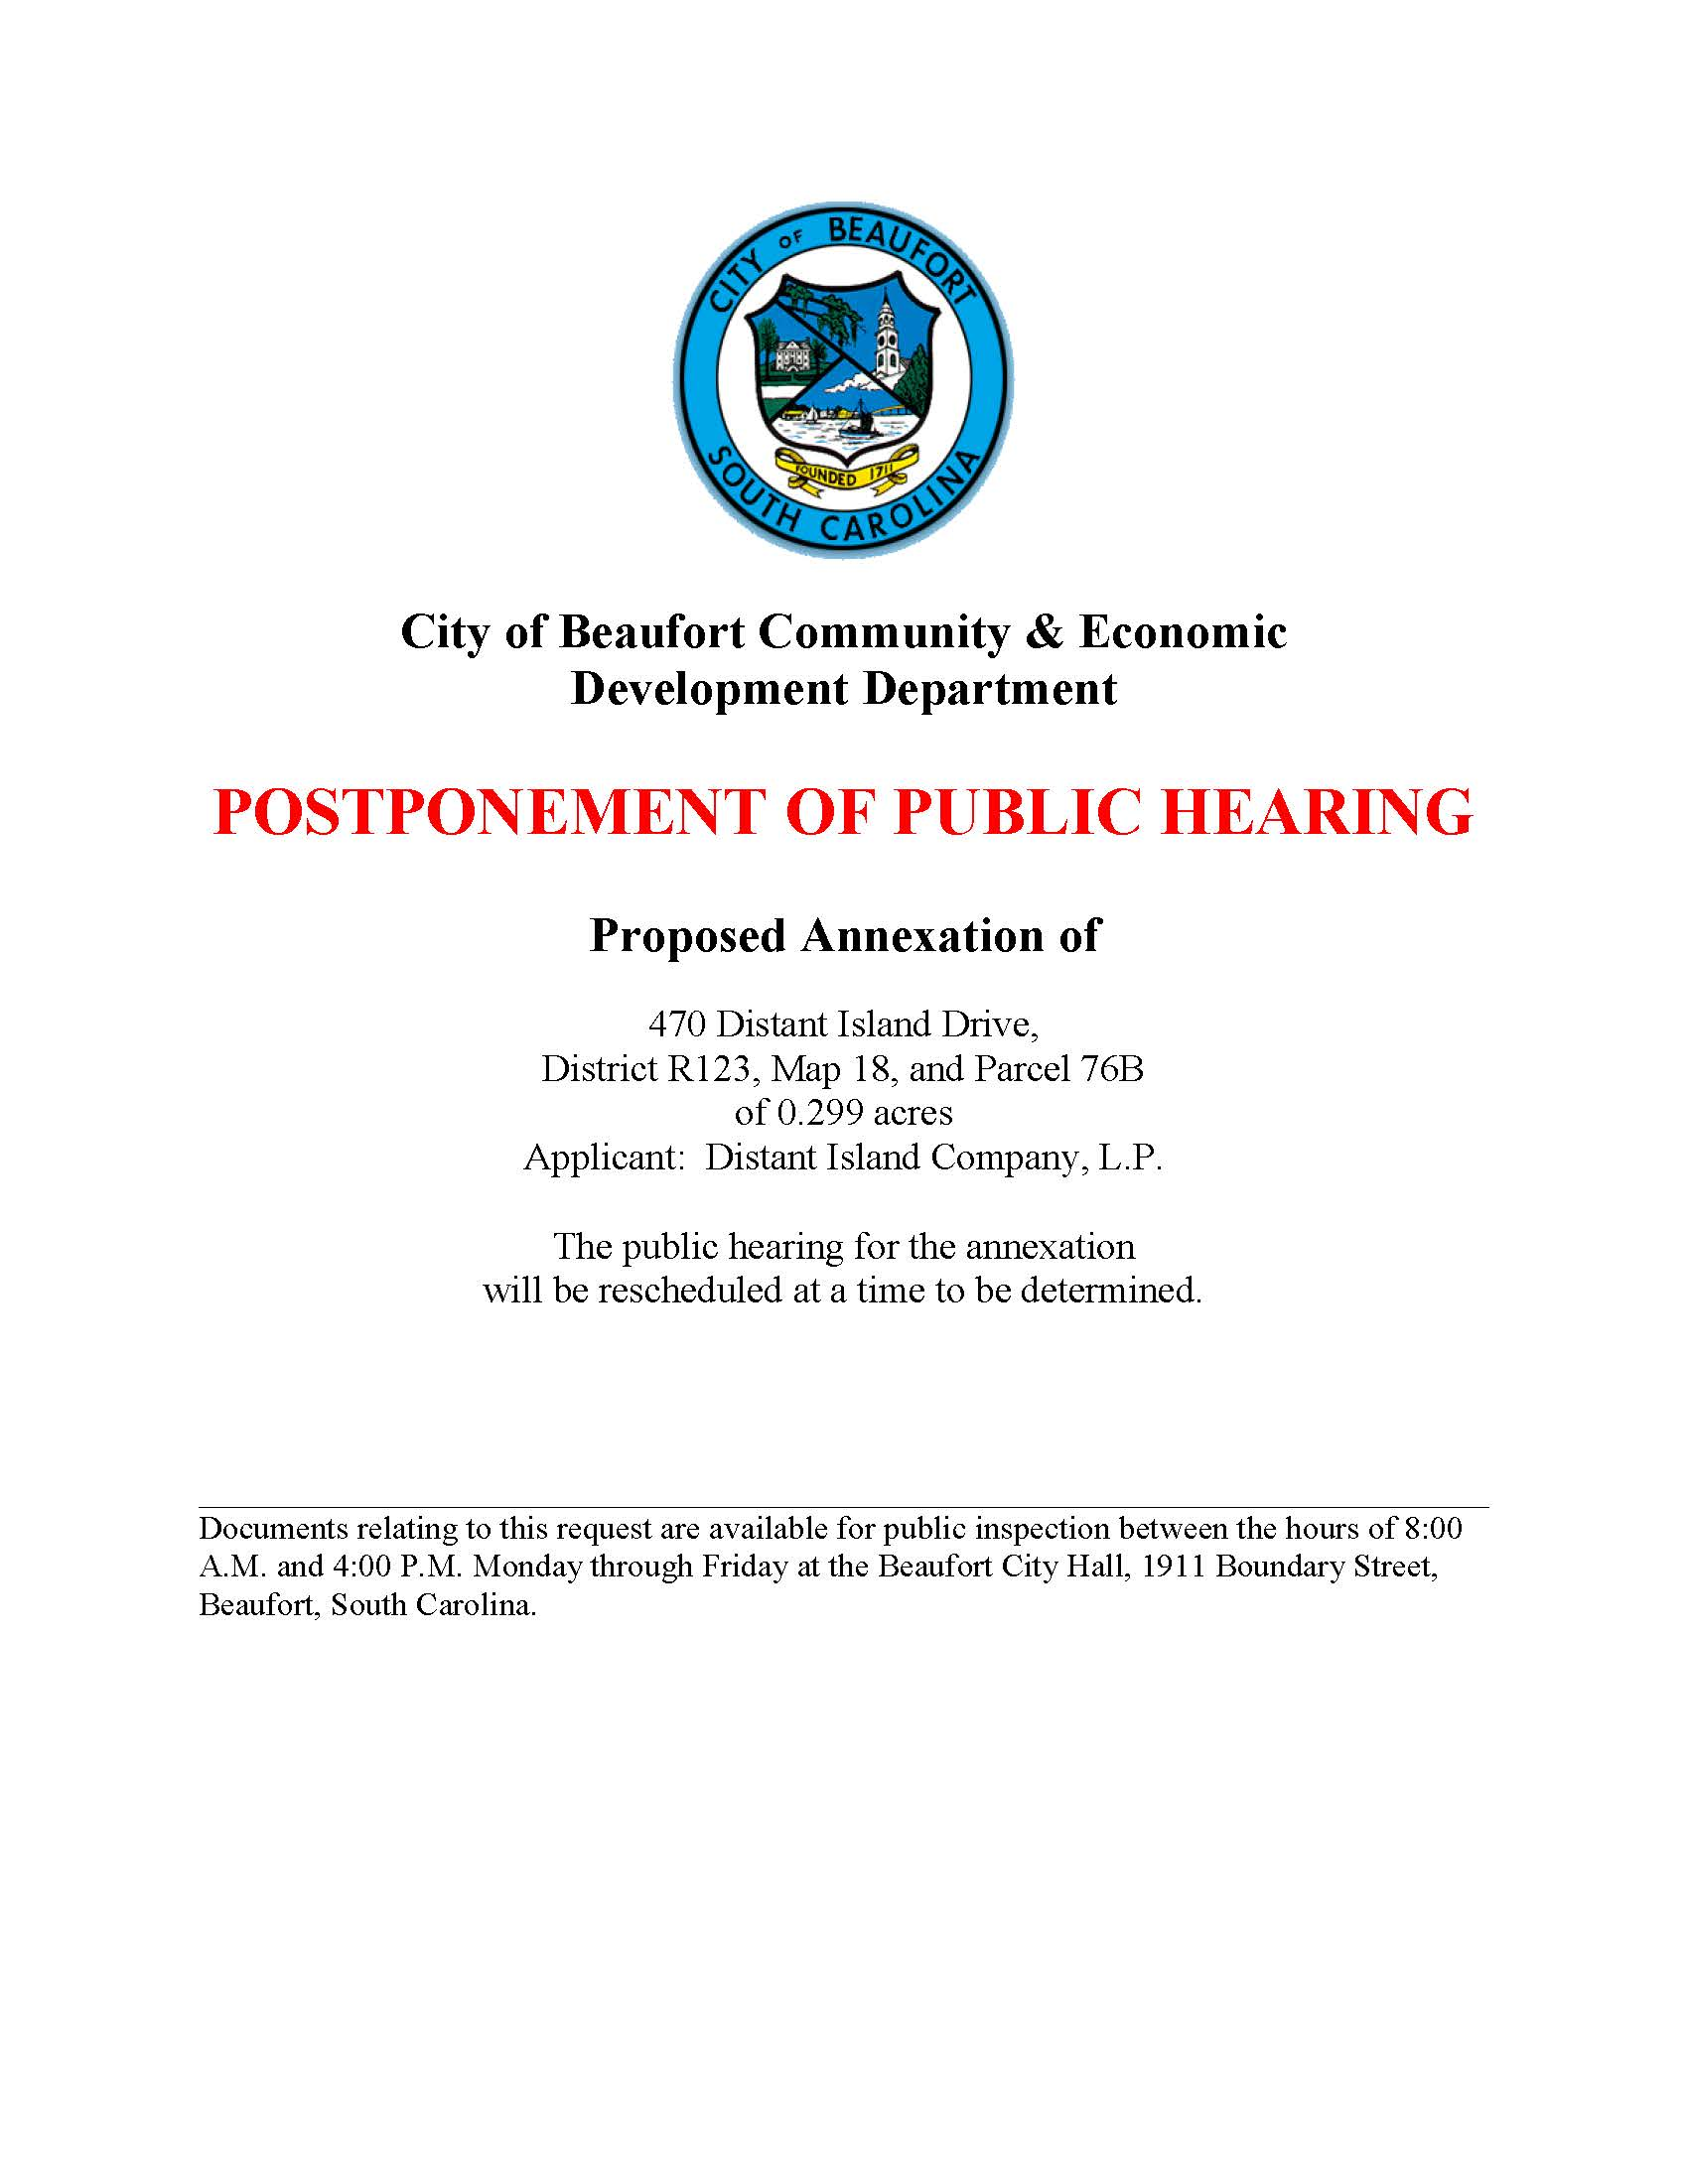 Distant island drive_annexation_Notice of public hearing_reschedule (003)